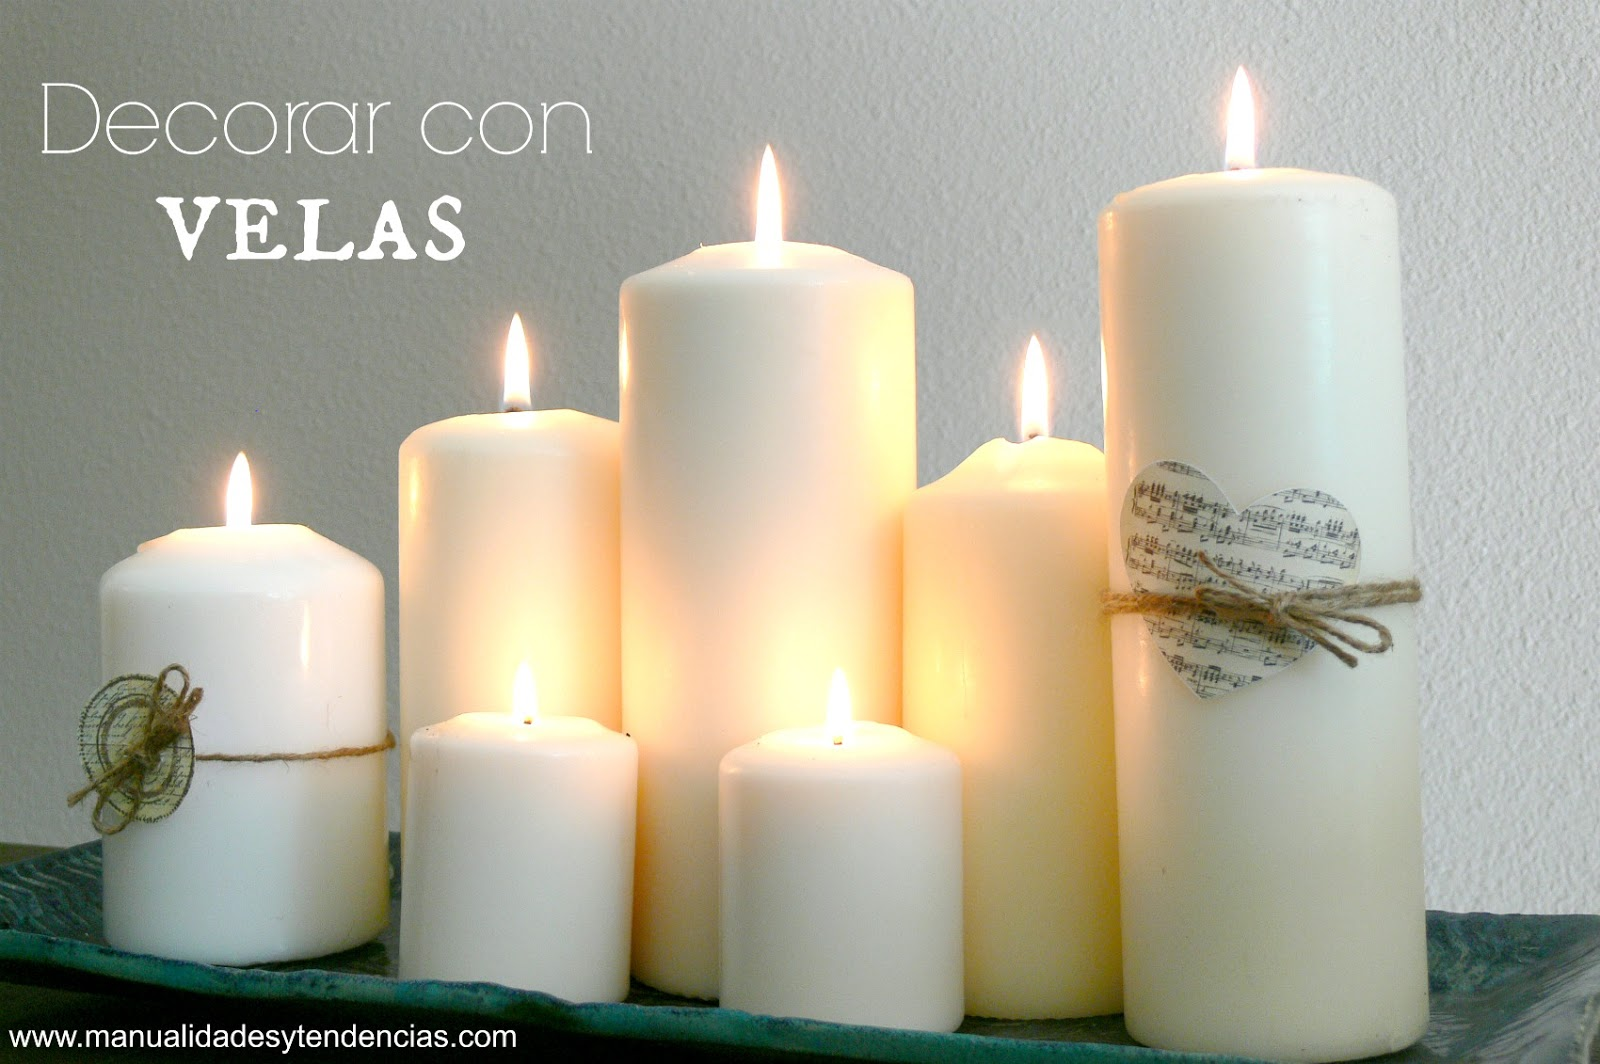 Manualidades y tendencias decorar con velas candle decoration ideas - Decorar con velas ...